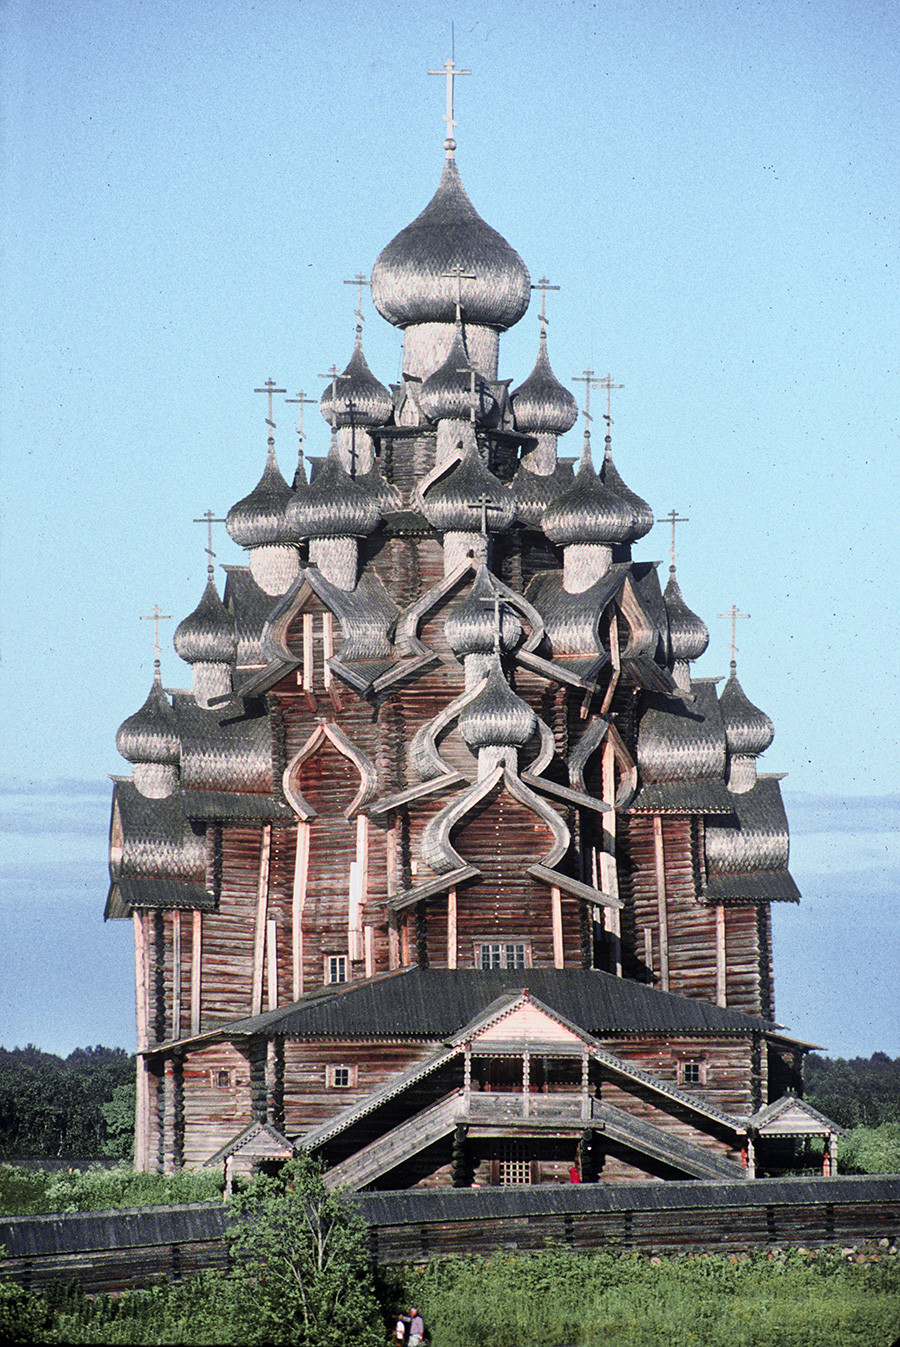 Kizhi pogost. Church of the Transfiguration, west view from Lake Onega. July 13, 1993